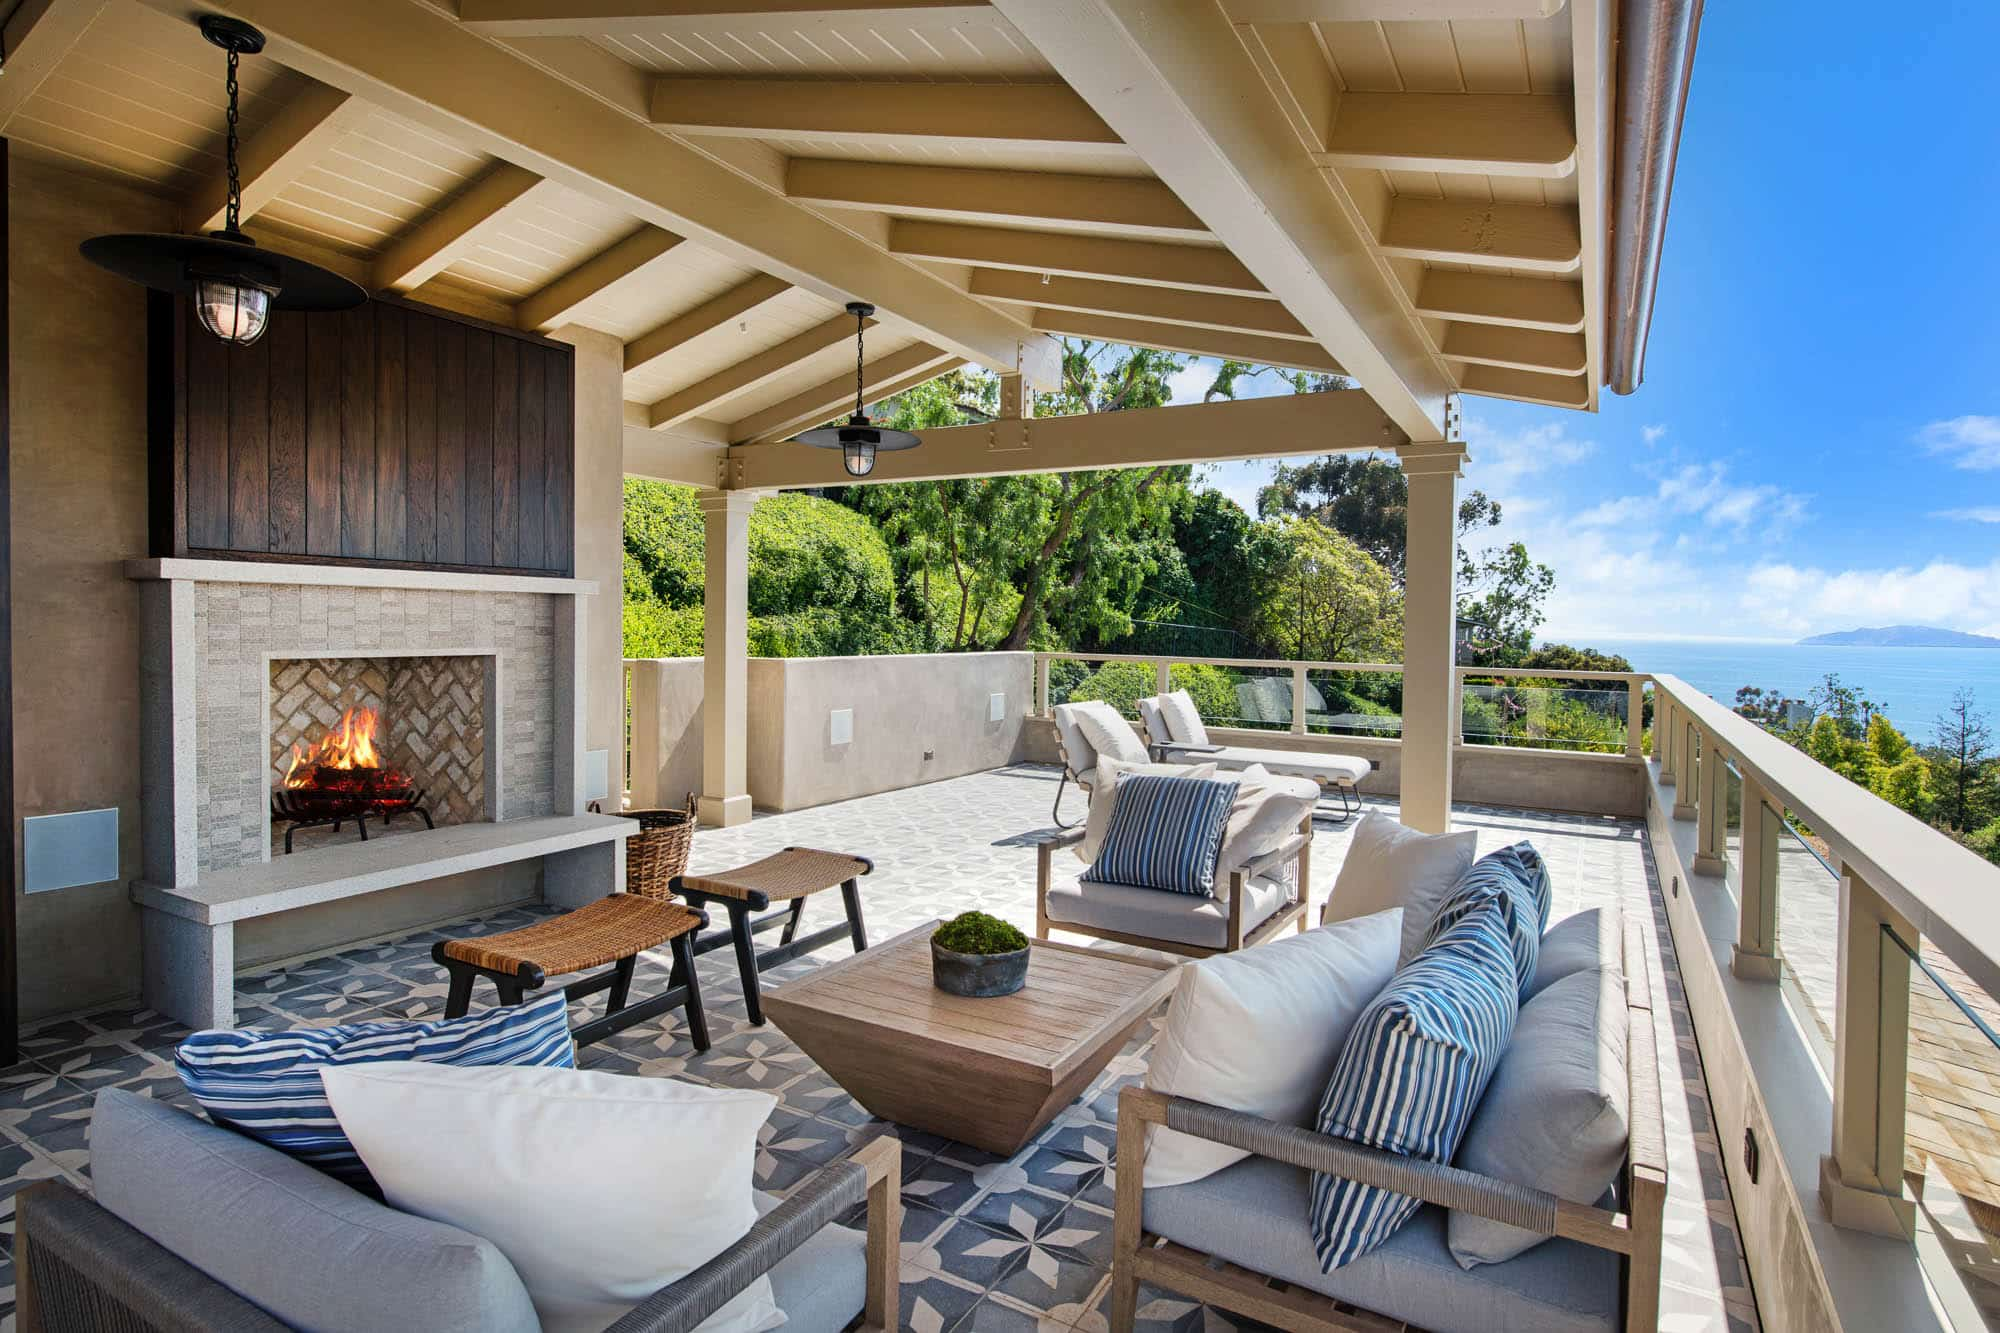 Luxury Outdoor Living Space With Ocean Views And Outdoor Fireplace